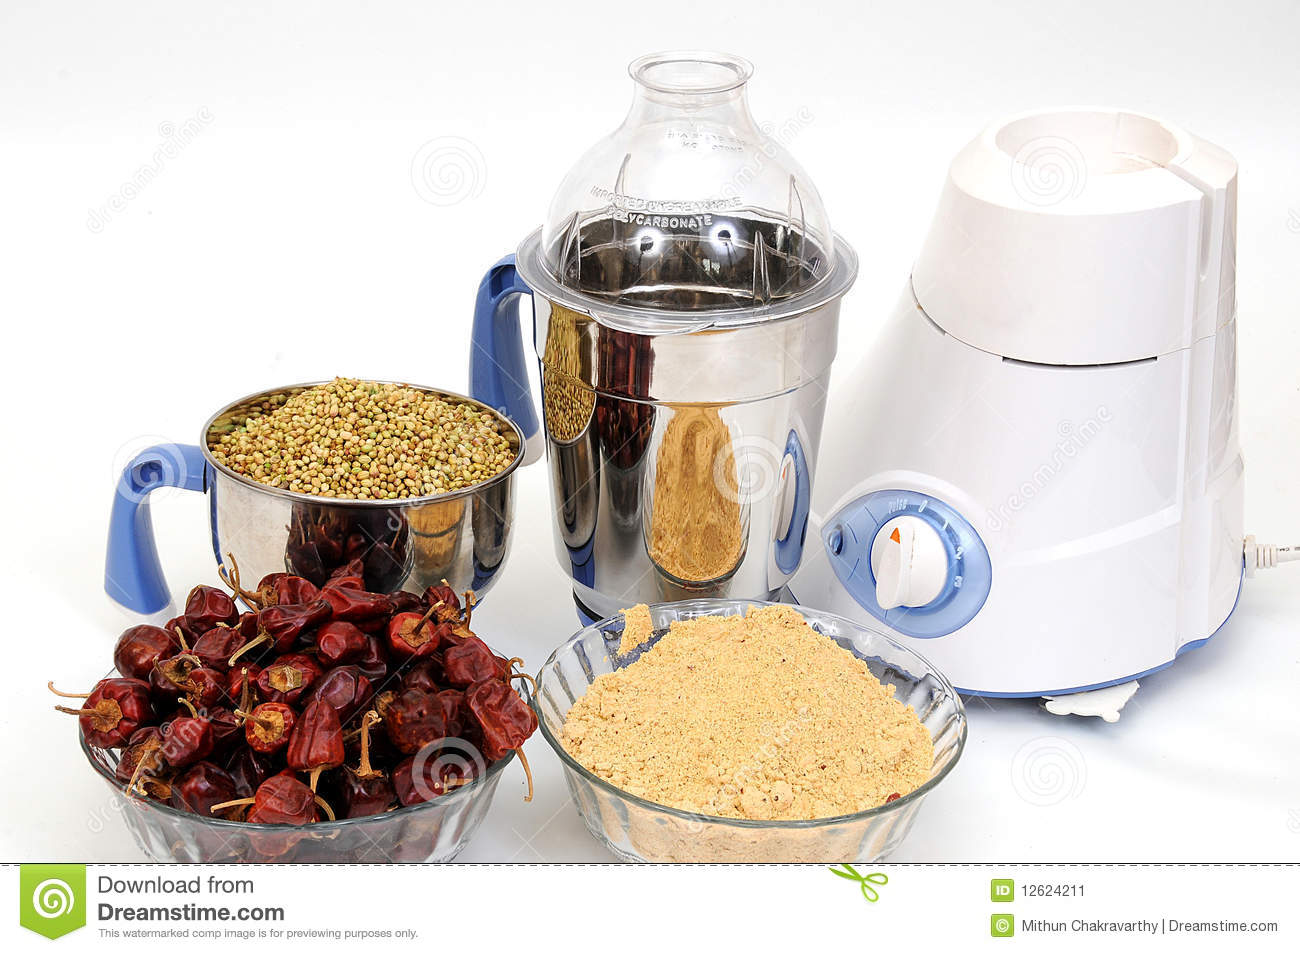 Food Processor Software Free Download For Mac